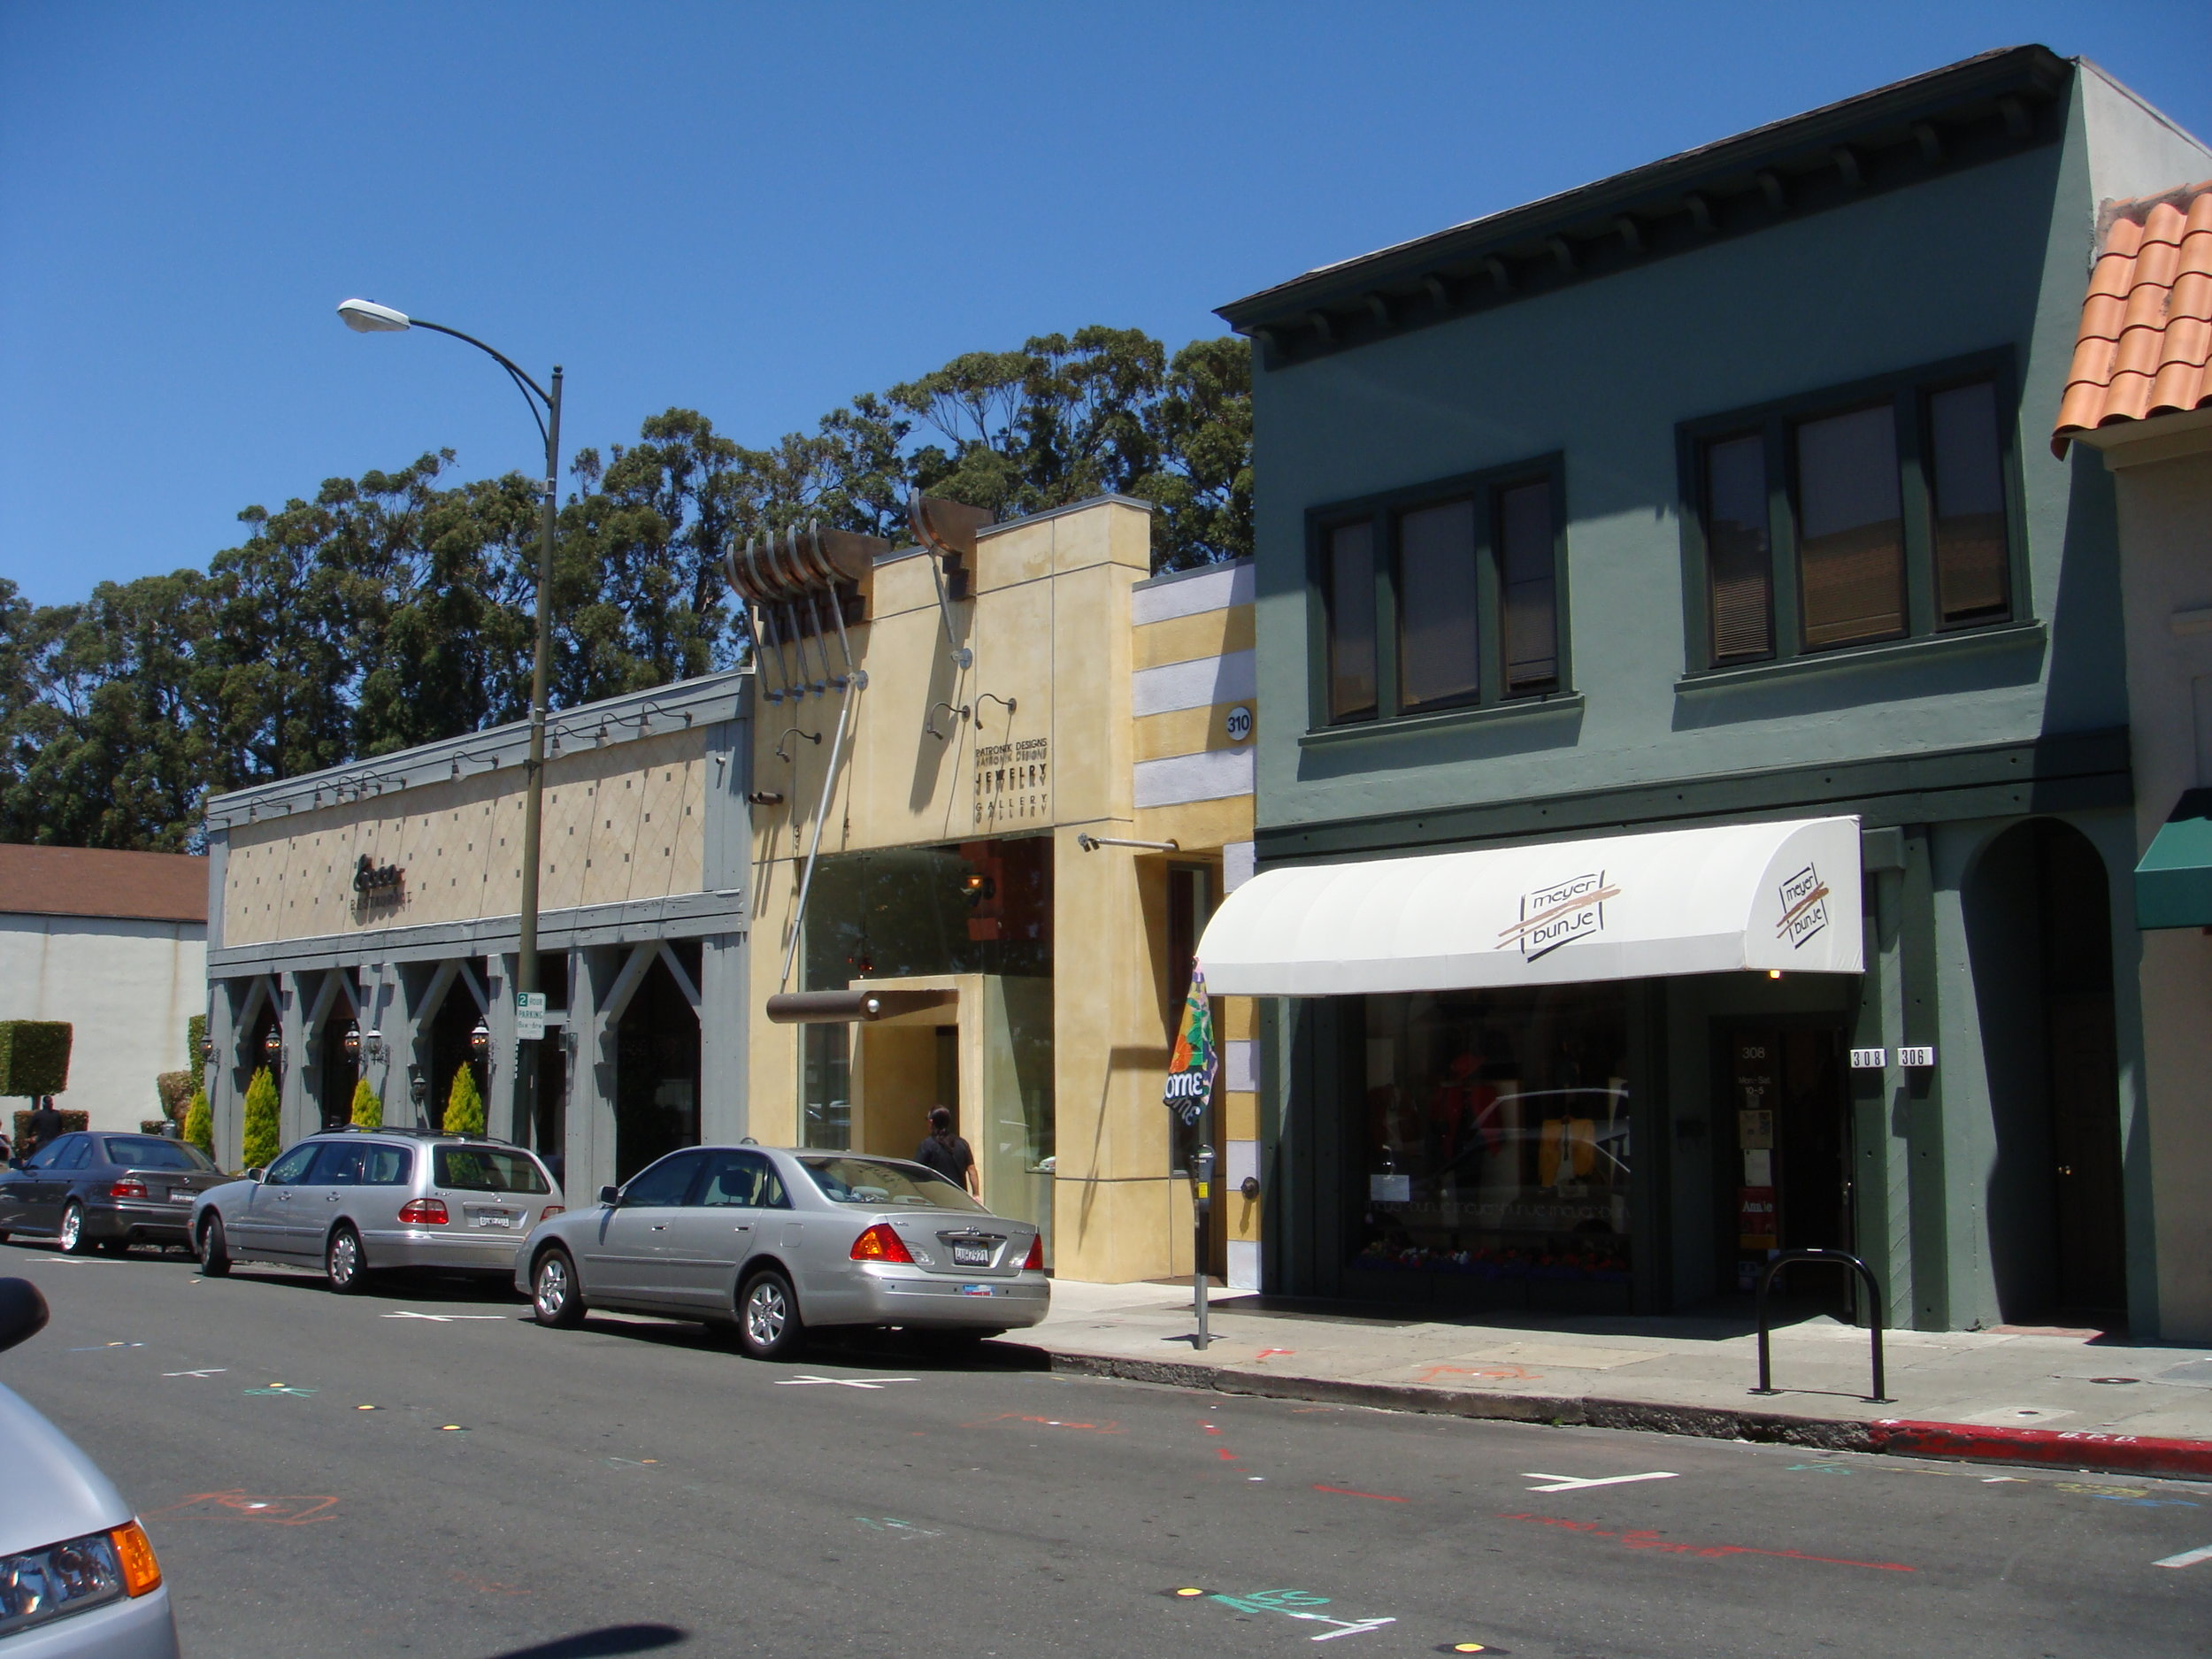 306-314 Lorton Avenue, Burlingame, CA 94010 11,397 SF Three Building Mixed-Use Retail $4,255,000